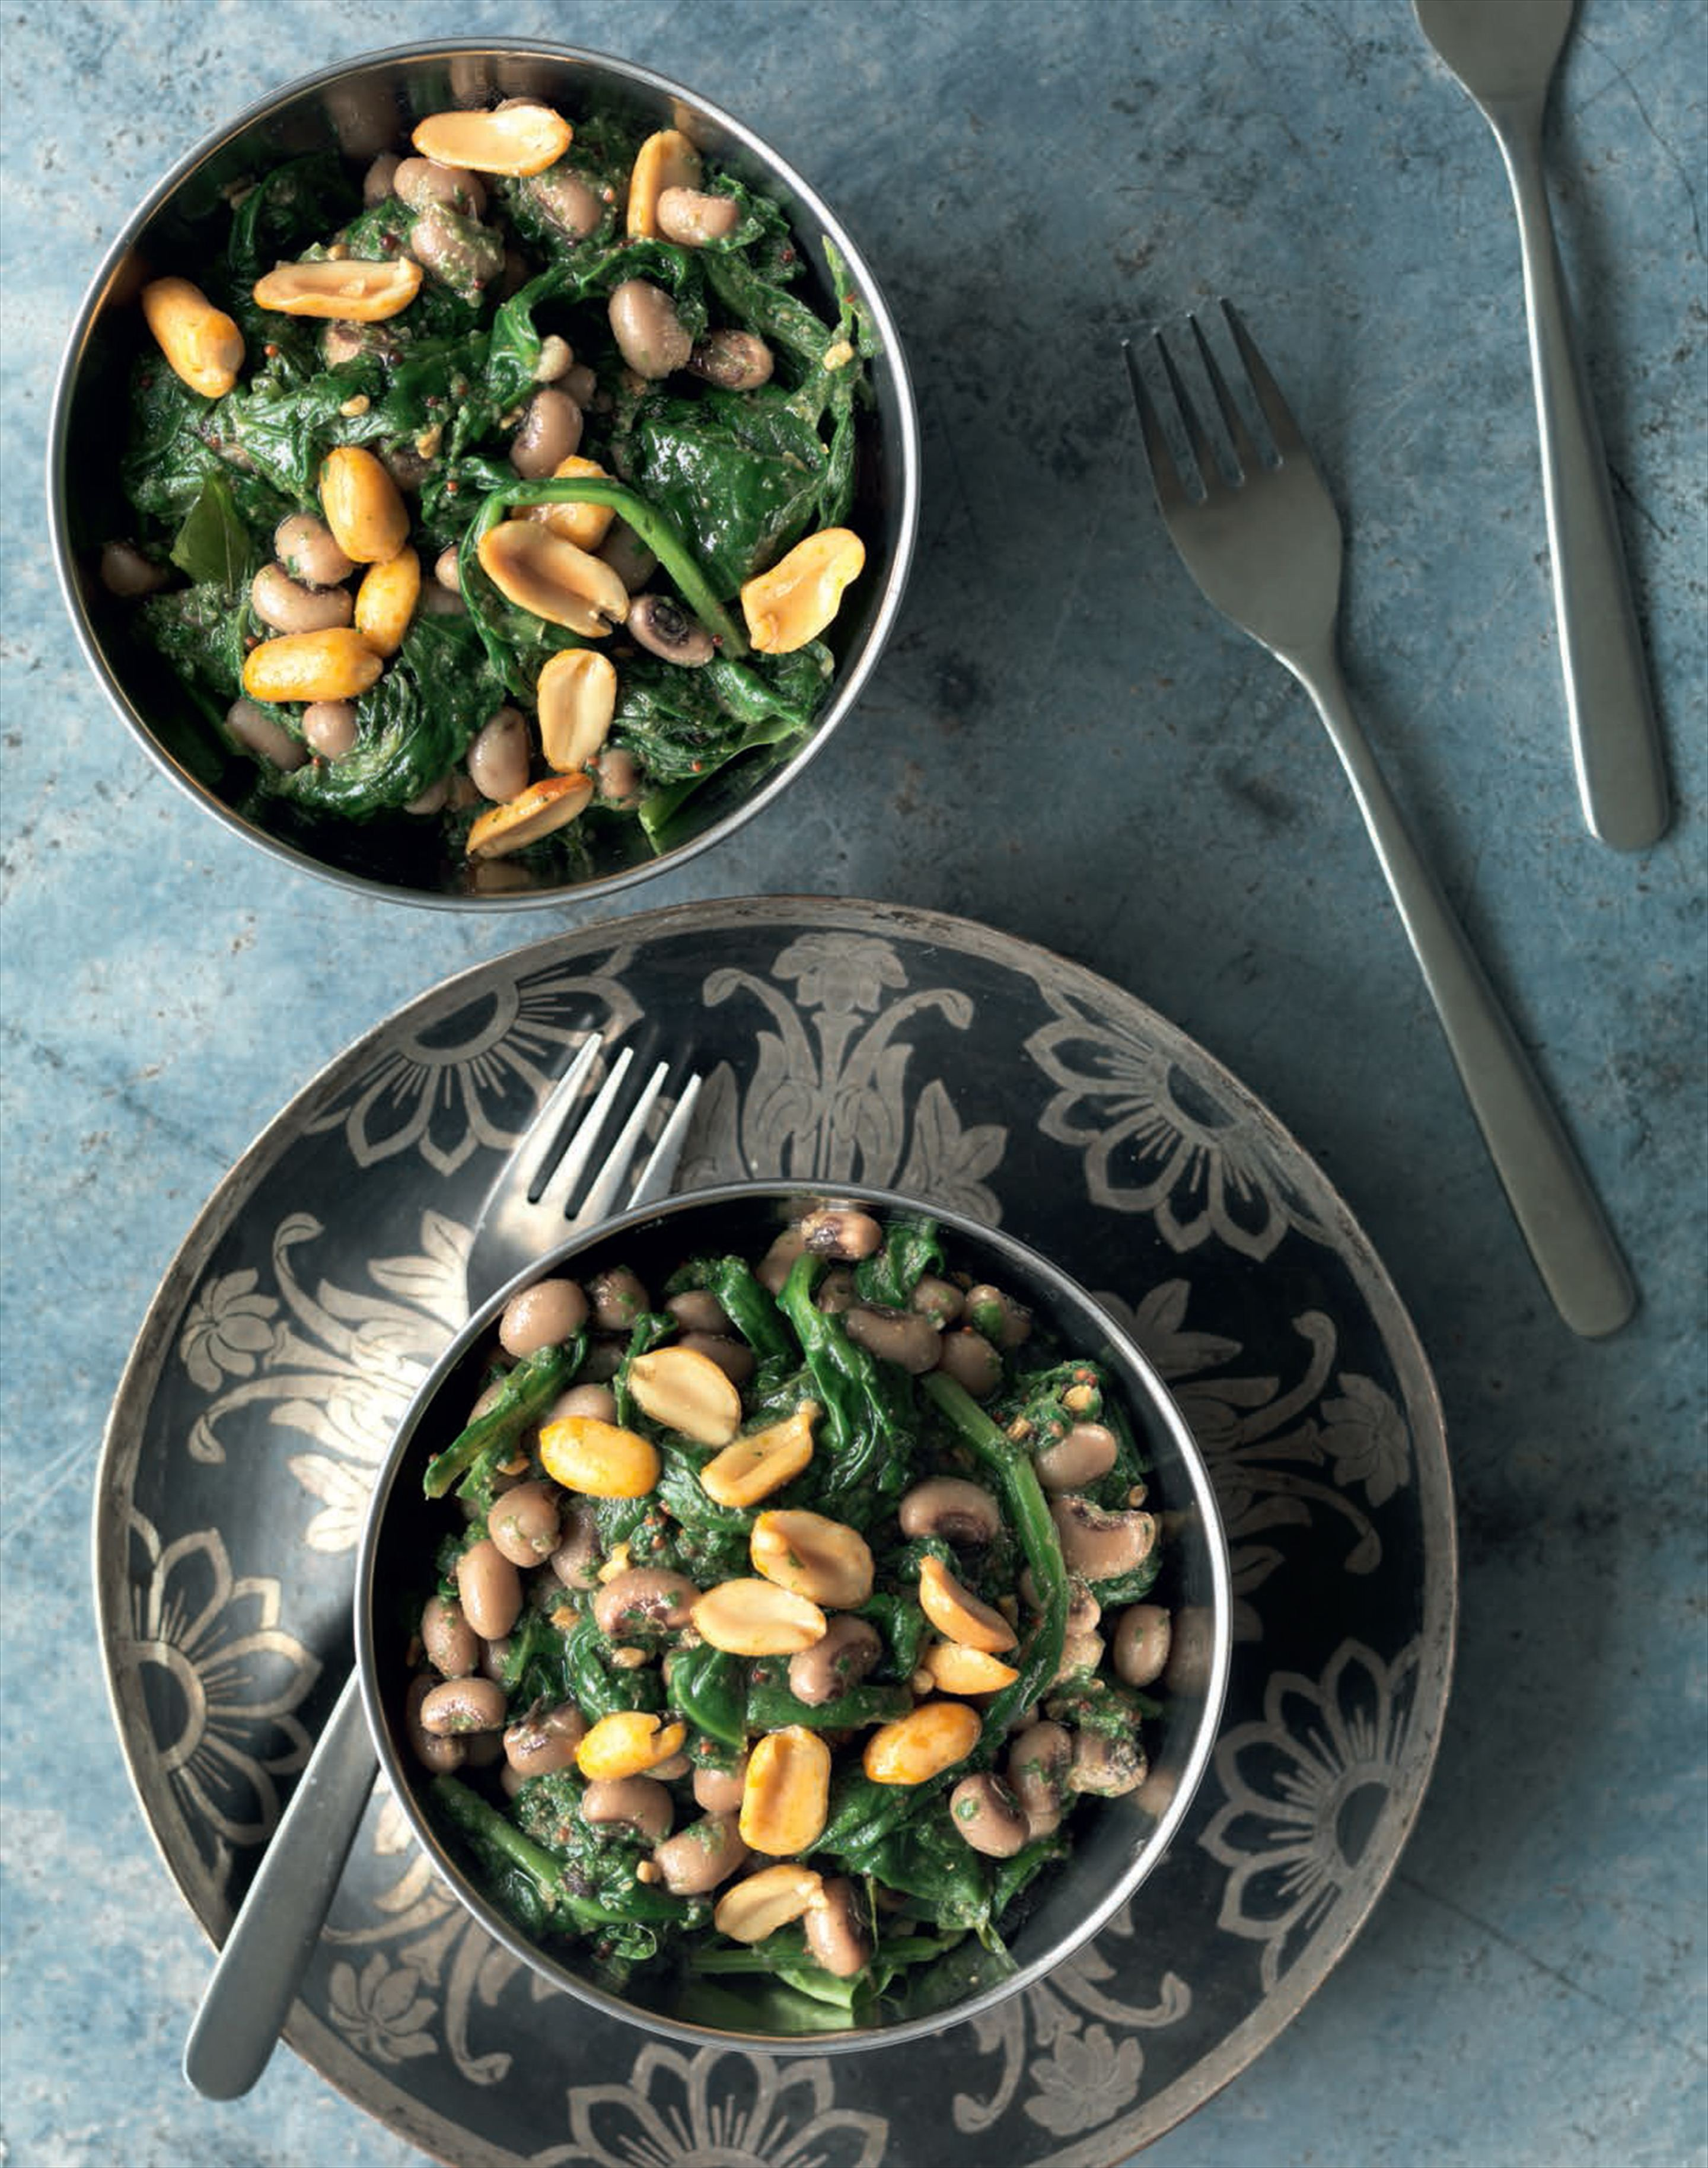 Spinach with black-eyed peas